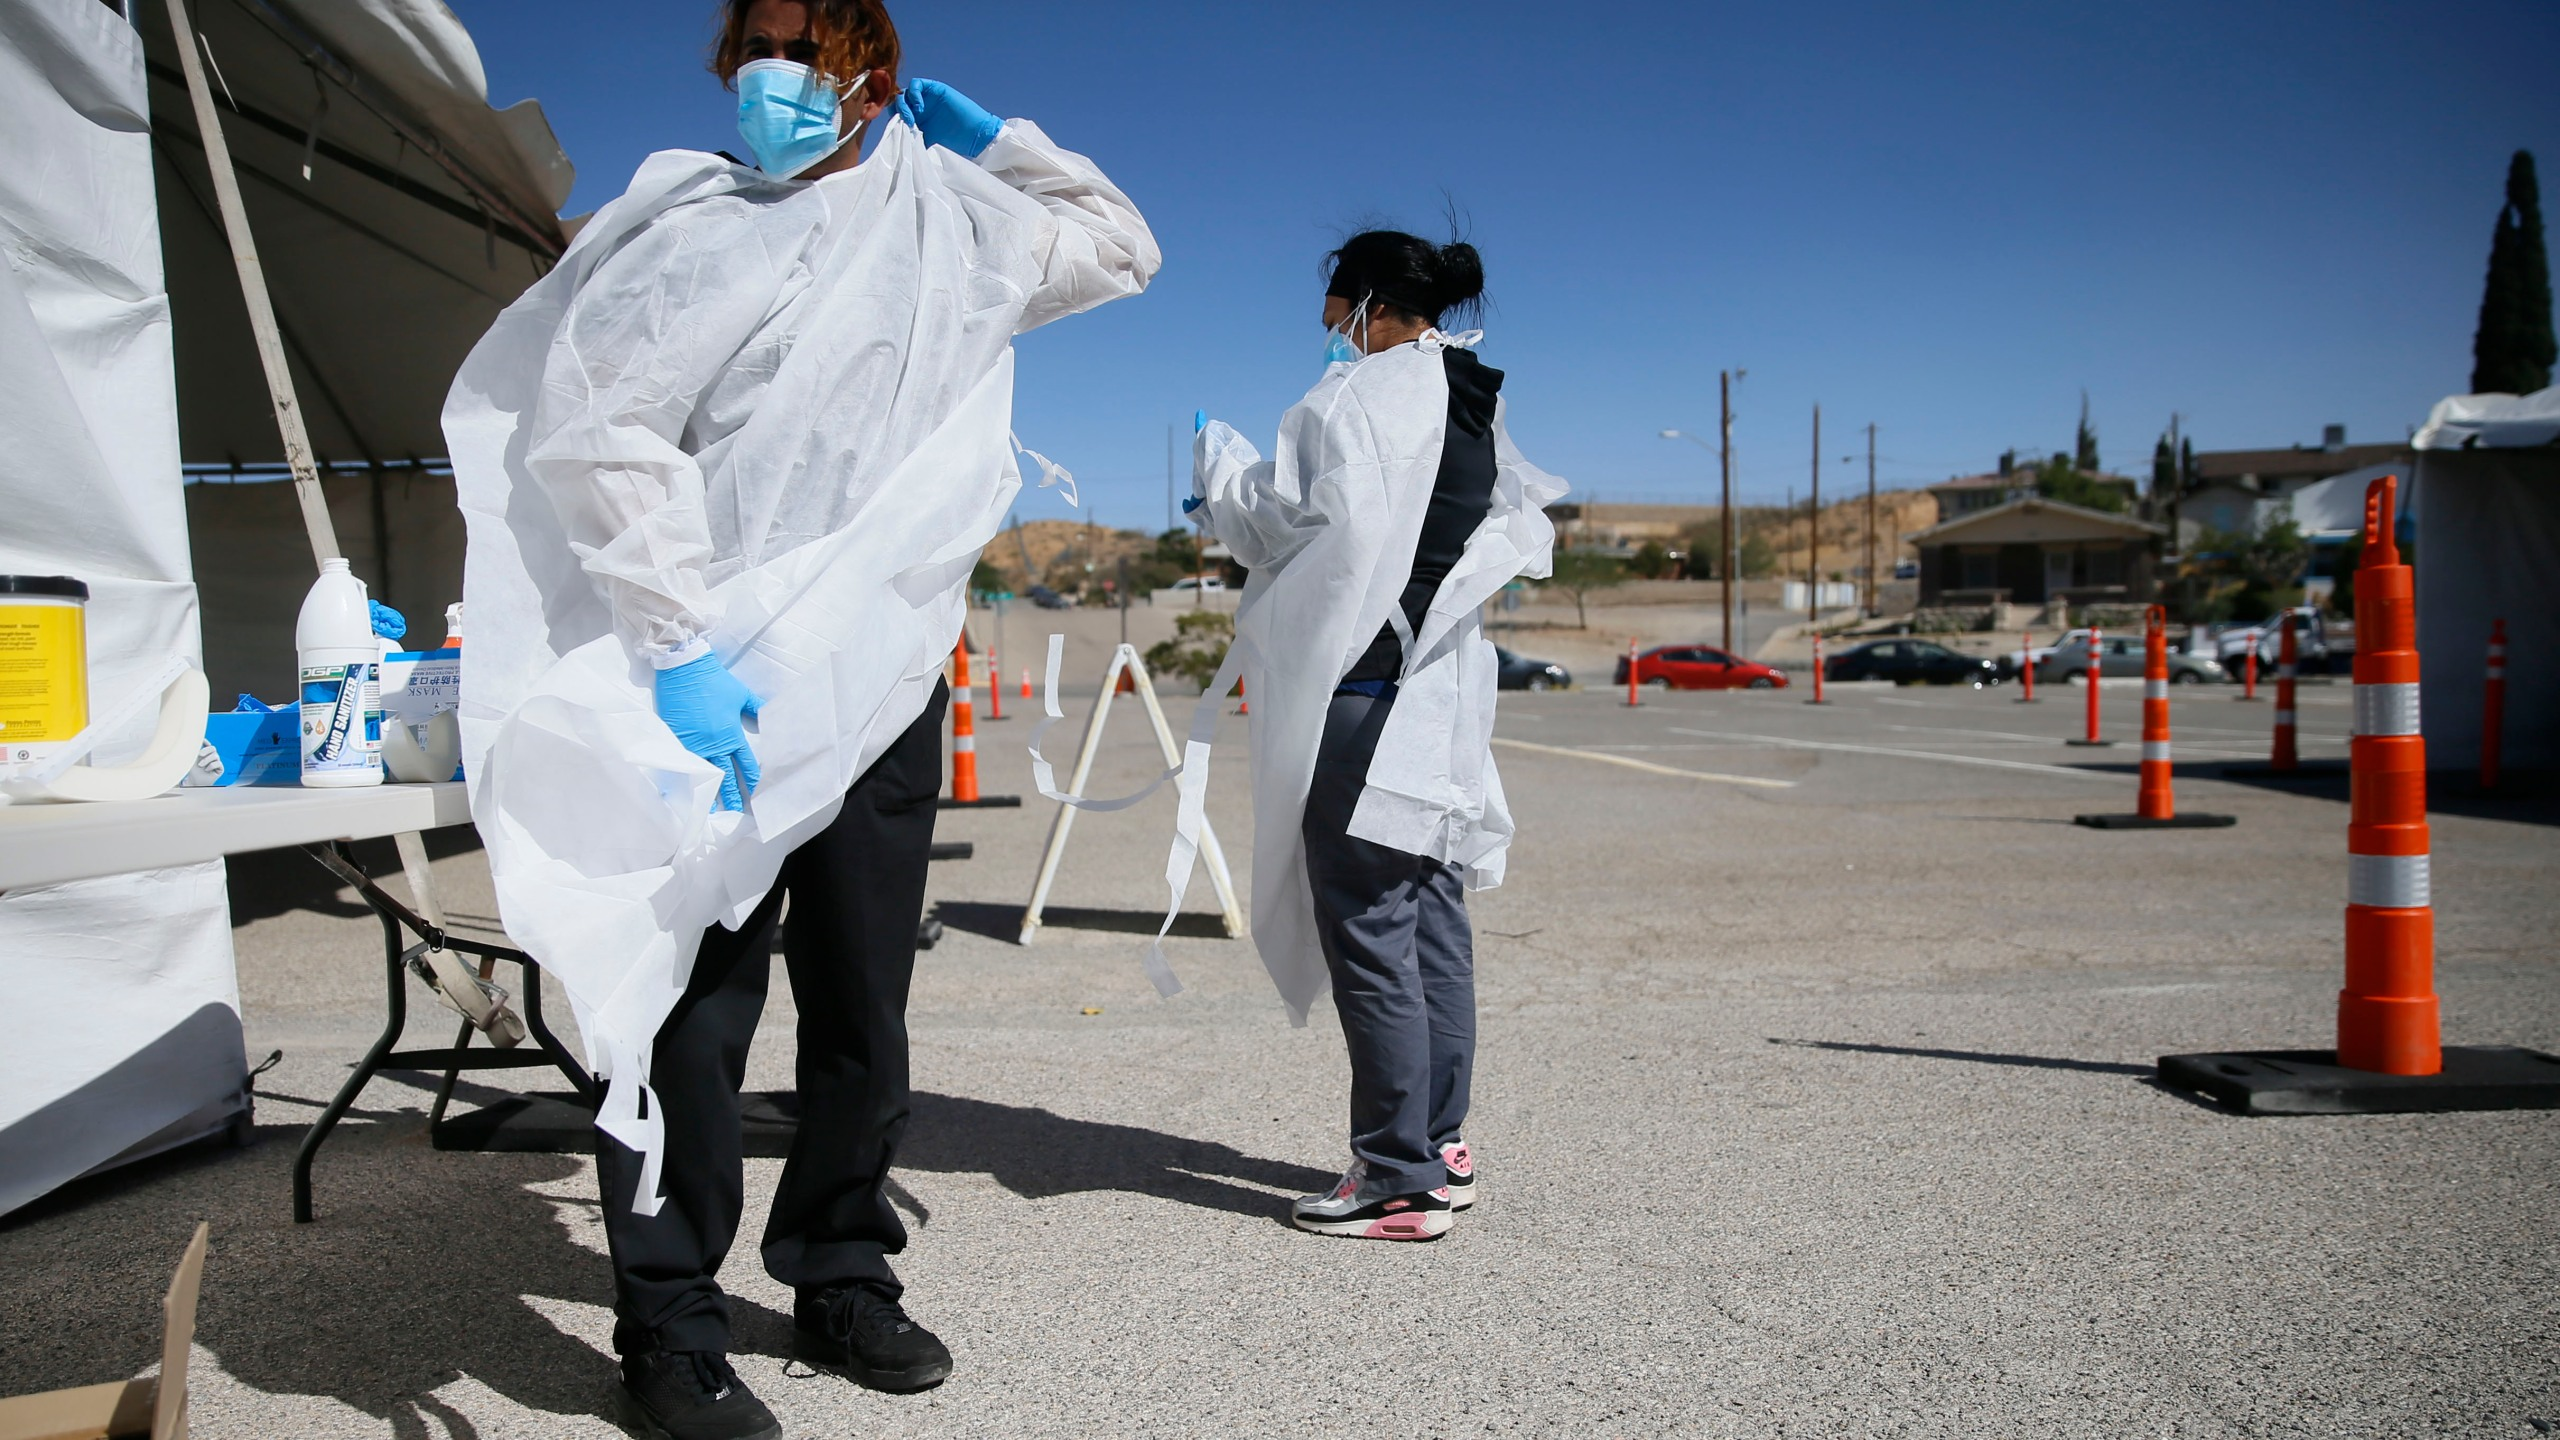 In this Oct. 26, 2020, file photo, Jacob Newberry puts on new PPE at the COVID-19 state drive-thru testing location at UTEP in El Paso, Texas. (Briana Sanchez/The El Paso Times via AP, File)